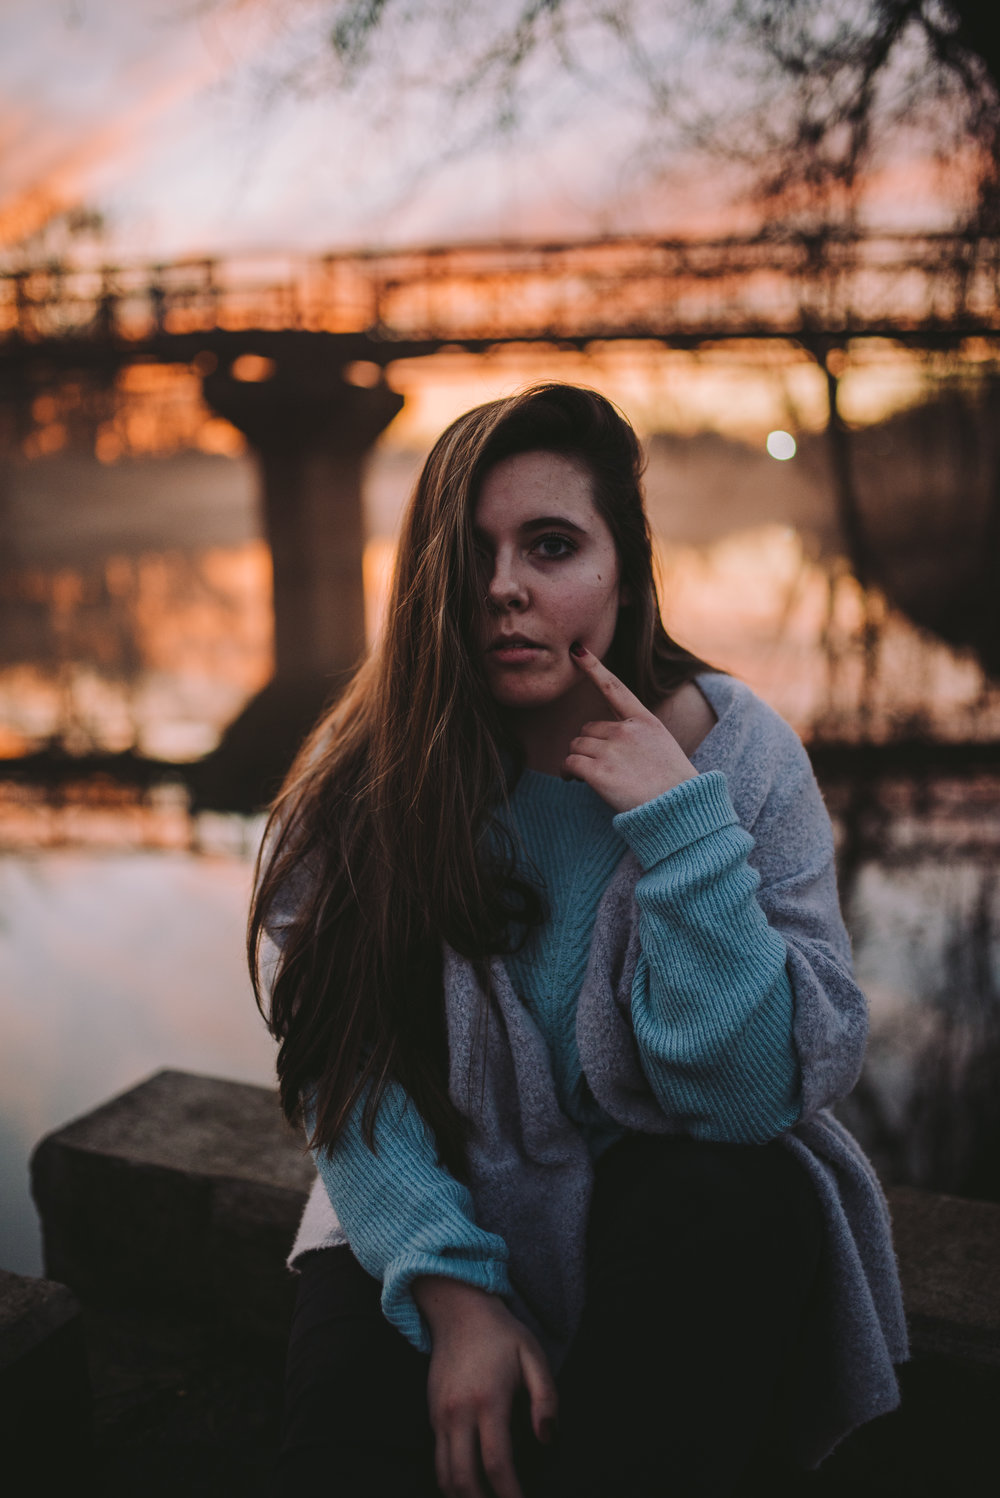 Sunset_IndianapolisIndiana_January2018_Senior Photography In Tempe_ArizonaSeniorPhotographer_SamanthaRosePhotography_final_-10.jpg